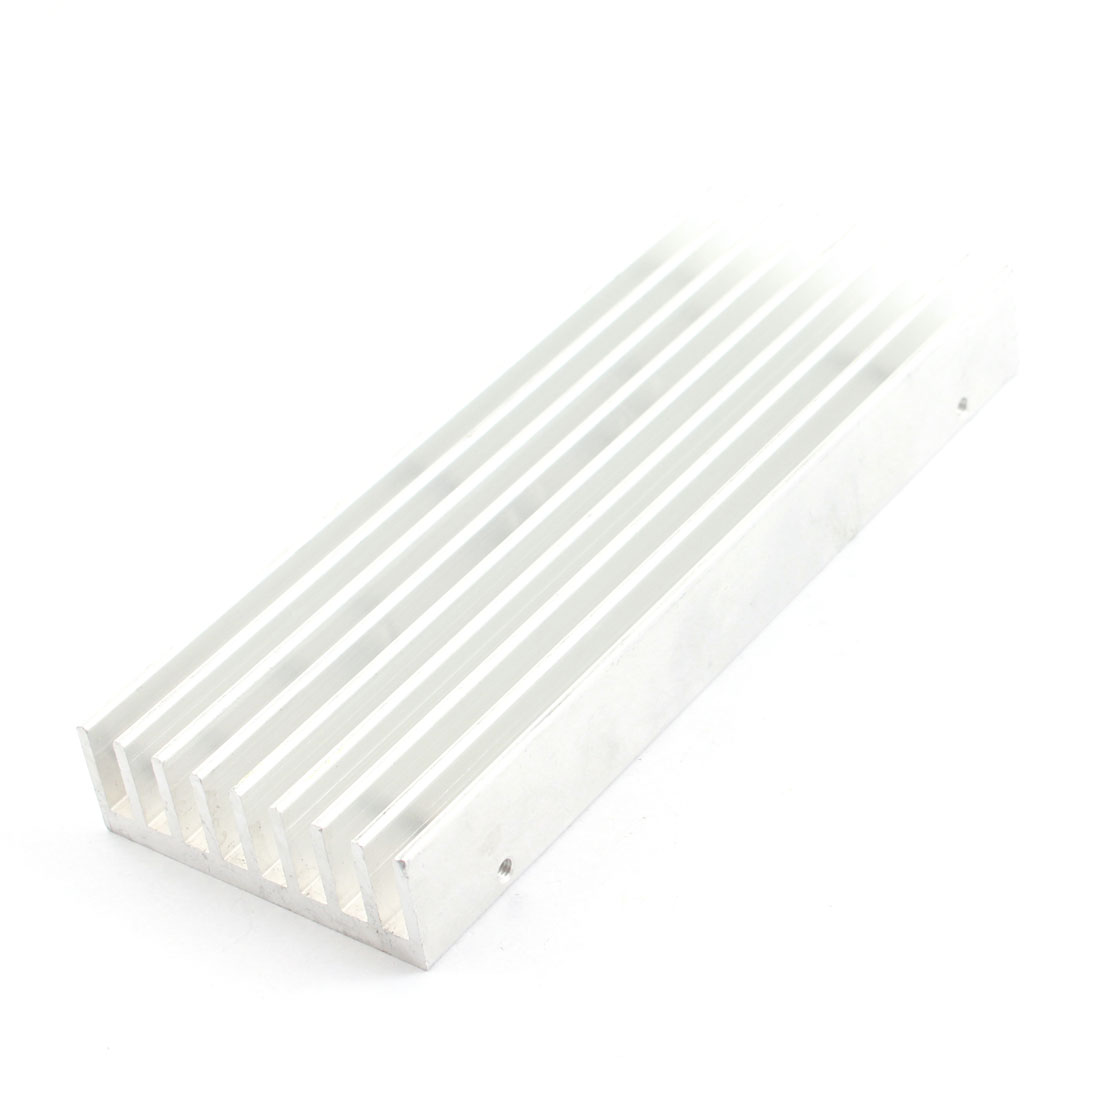 Aluminium Profile Rectangle Silver Tone Heatsink Heat Dissipation Cooler 135mm x 50mm x 17mm